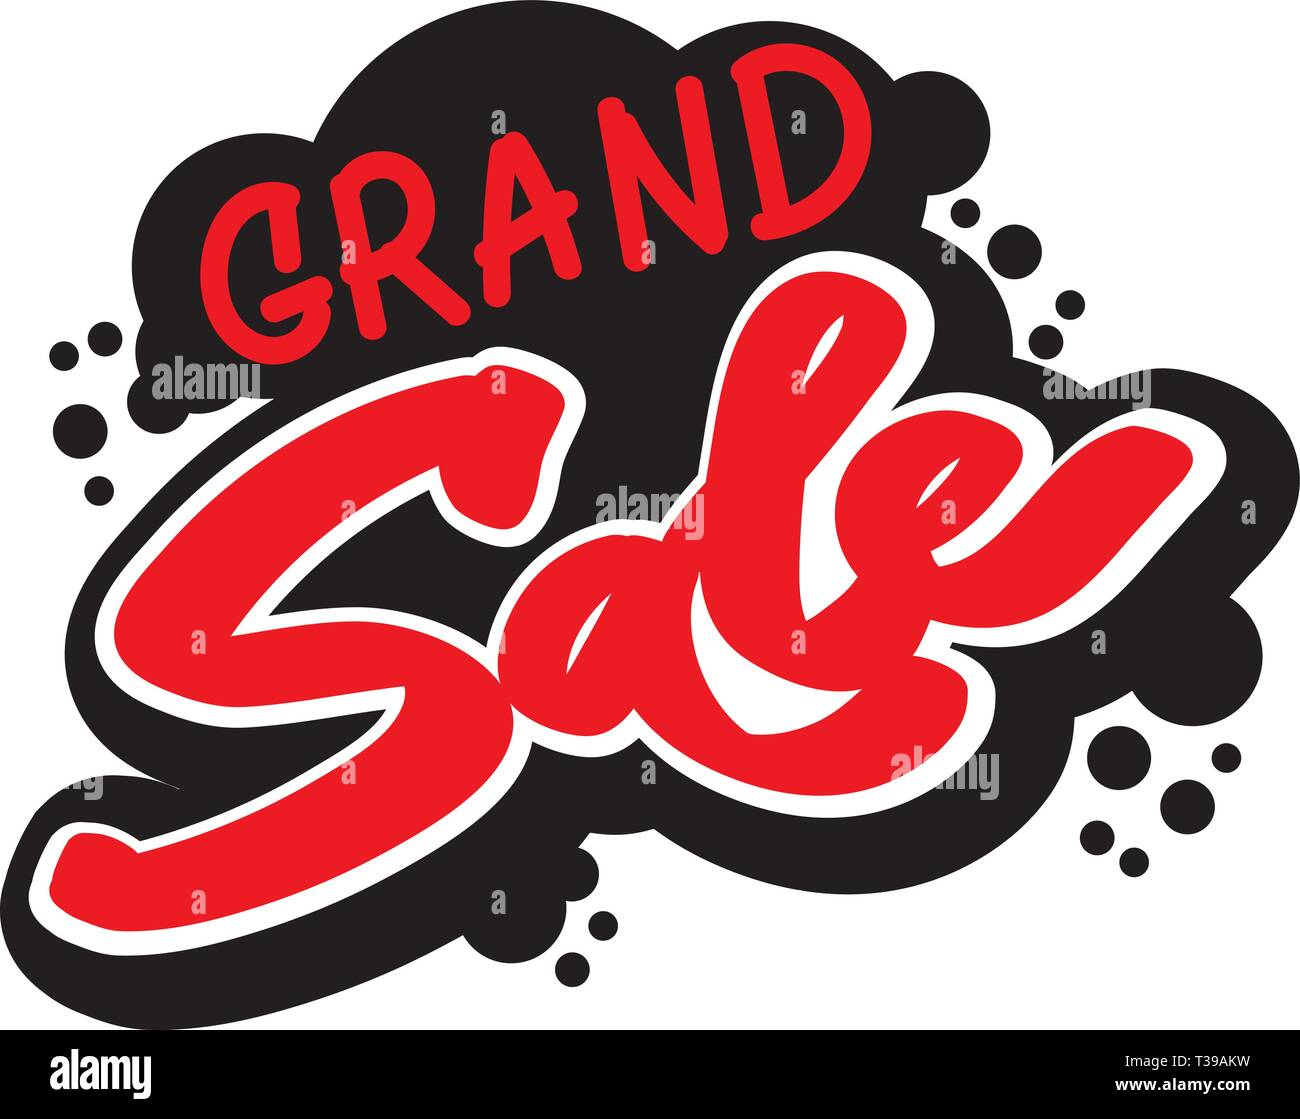 Grand sale lettering inscription, fat letters style, grunge, graffiti style. Hand written red and black brush lettering with 'grand sale' text. - Stock Image